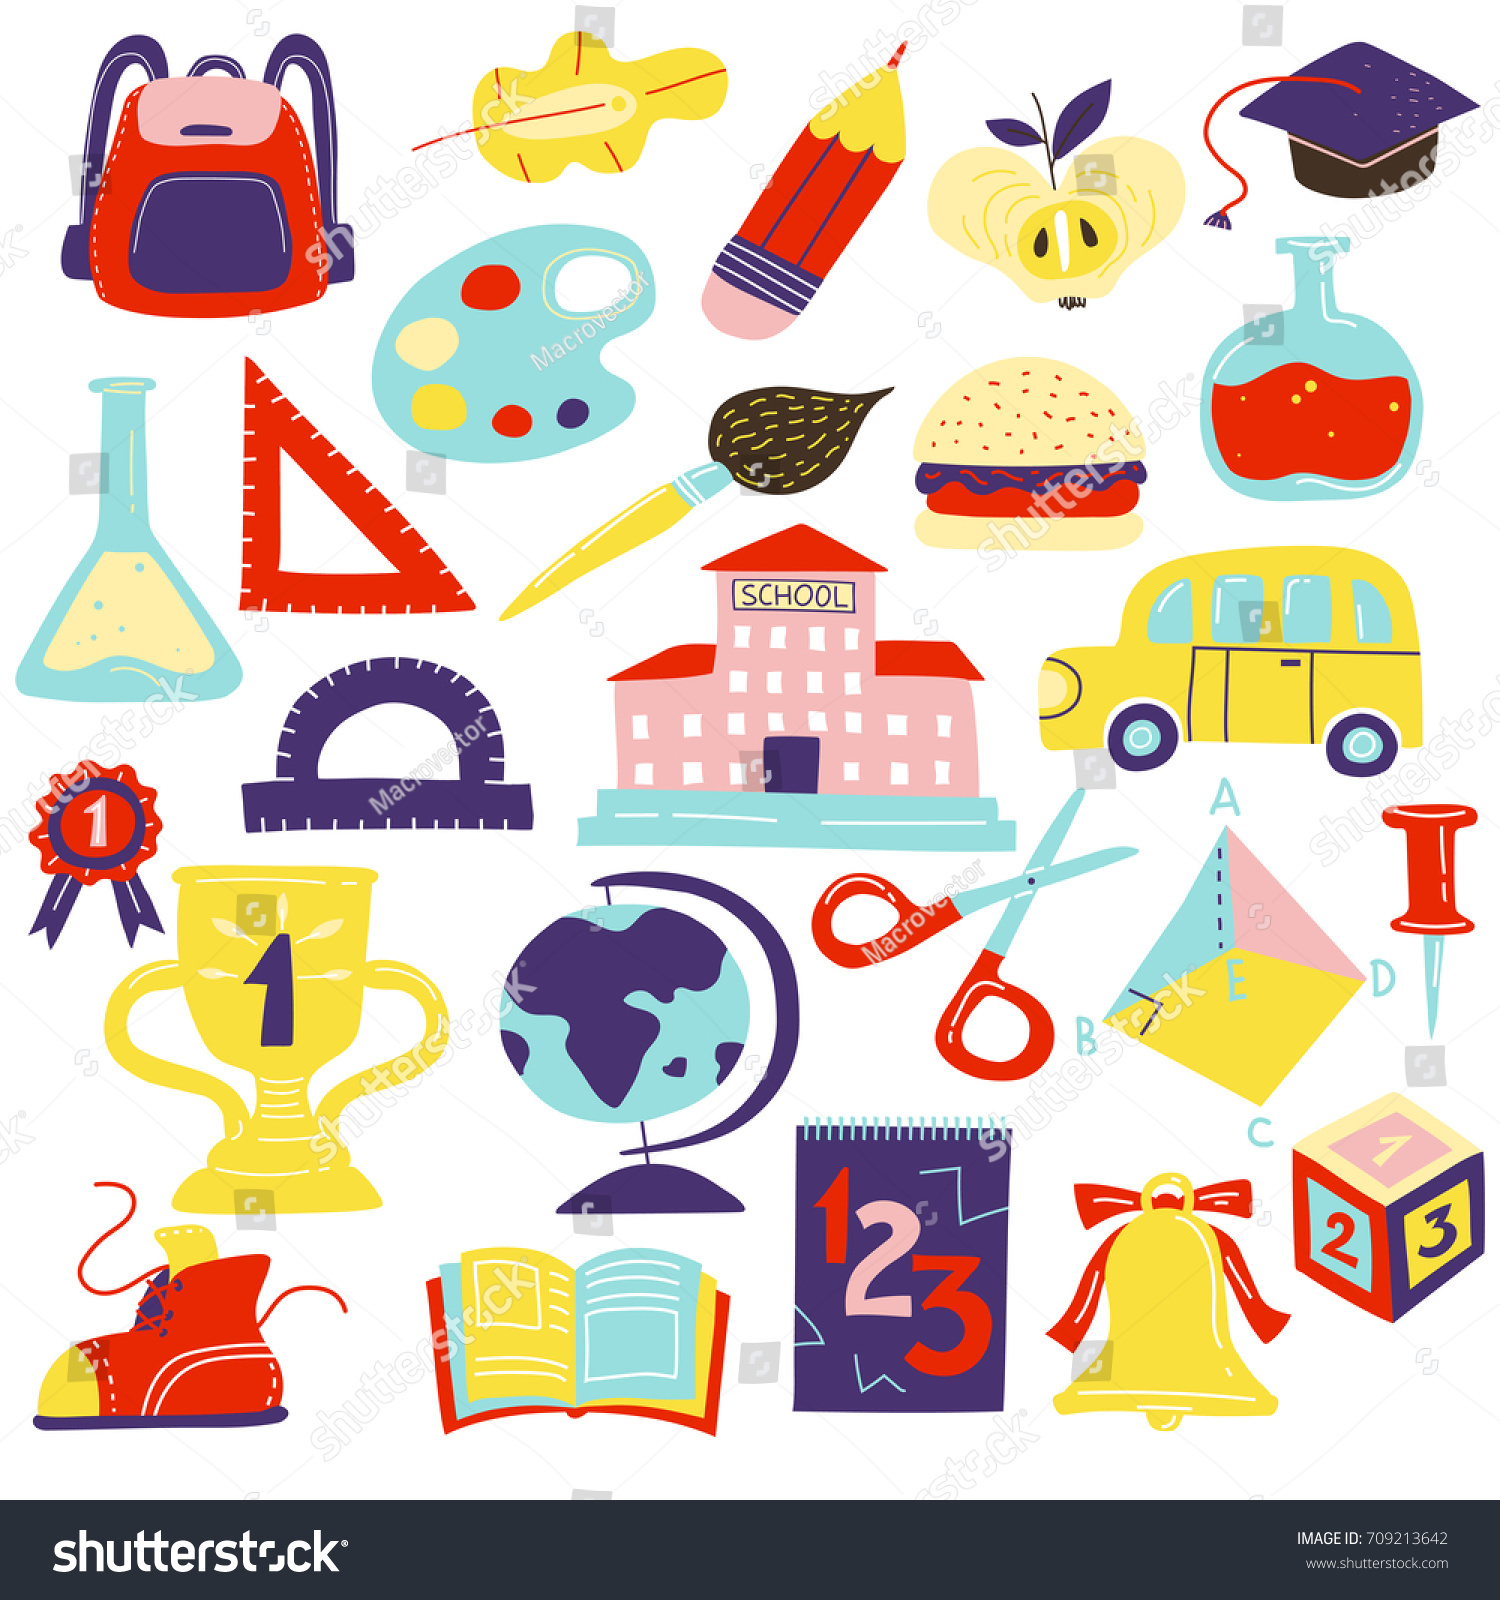 School symbols accessories flat icons set stock vector 709213642 school symbols accessories flat icons set with schoolbus schoolbooks scissors geometrical figures schoolbag bell isolated vector buycottarizona Image collections